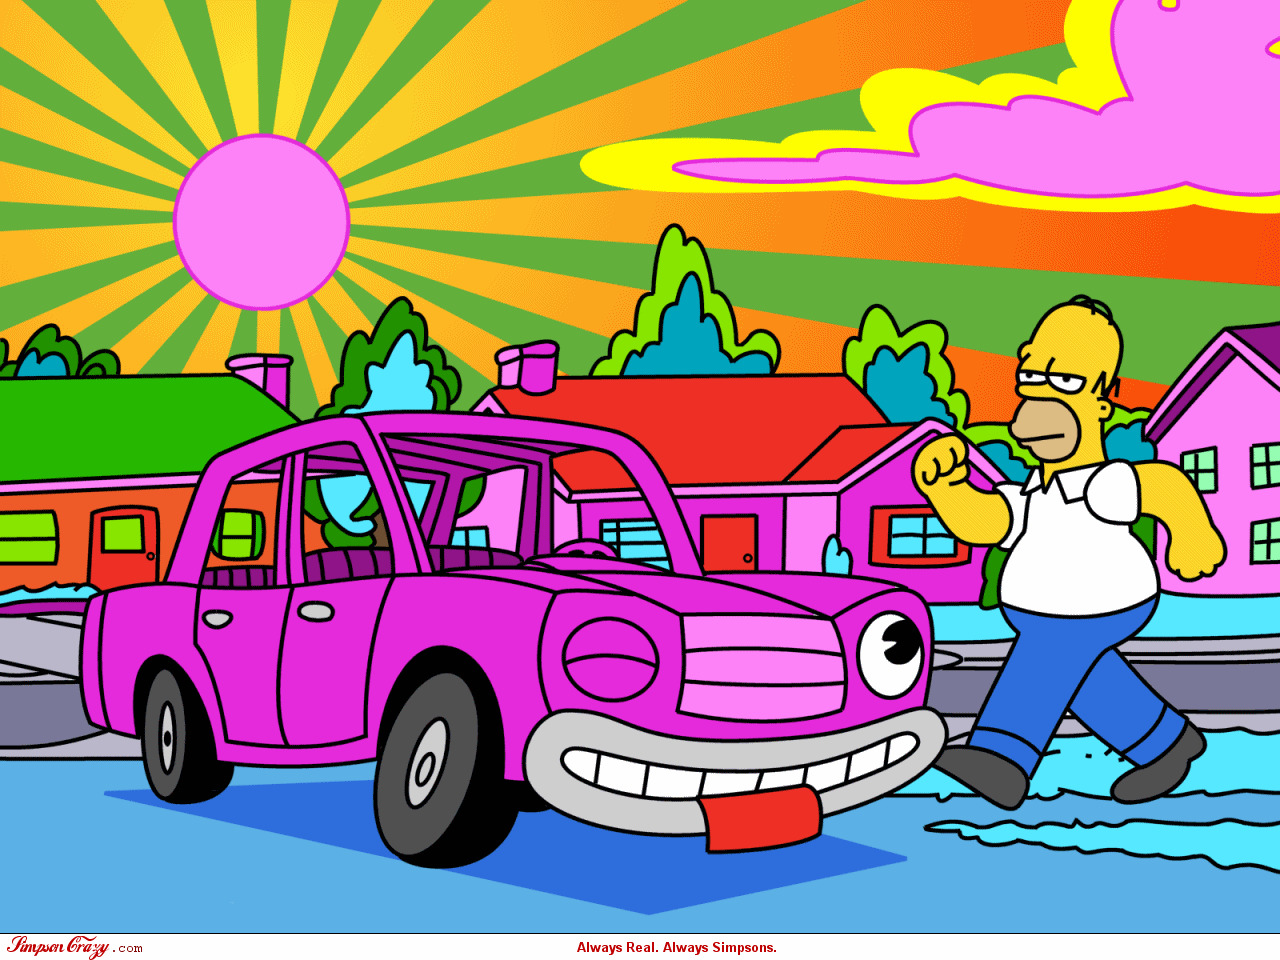 Homer simpson The simpsons HD Wallpaper